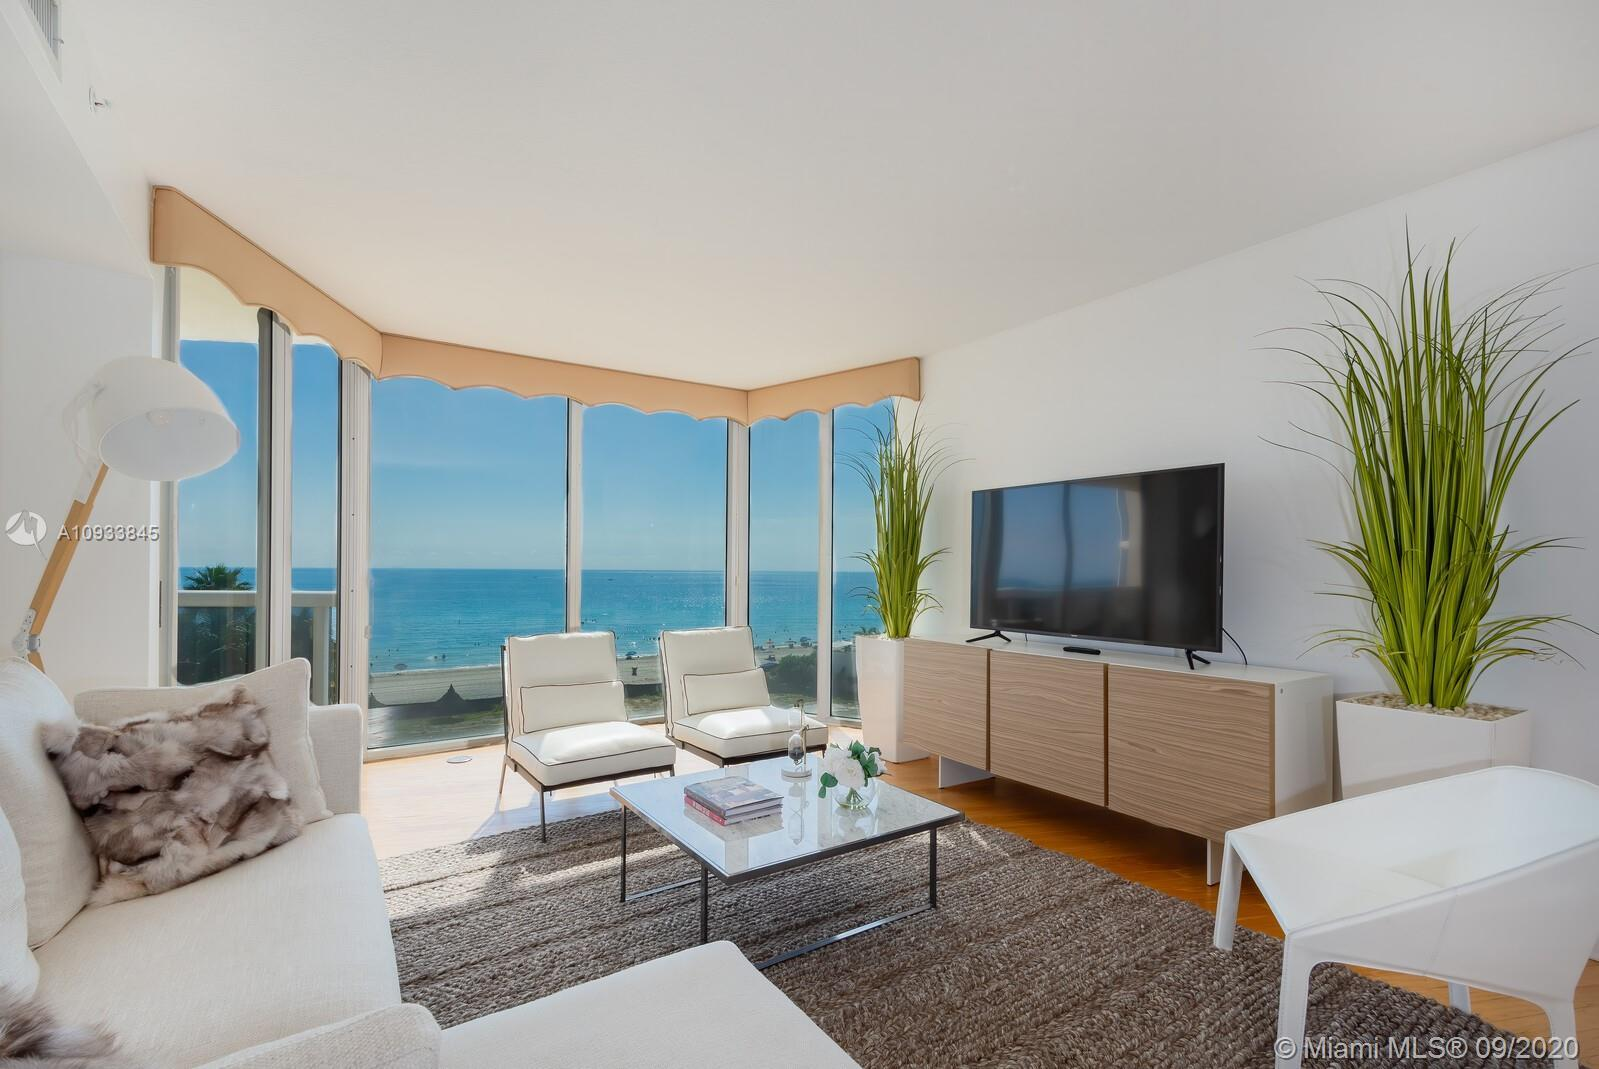 OCEANFRONT CORNER UNIT AT PINNACLE CONDO IN SUNNY ISLES BEACH, GLASS TO CEILING WINDOWS, 3 BED & 3 B